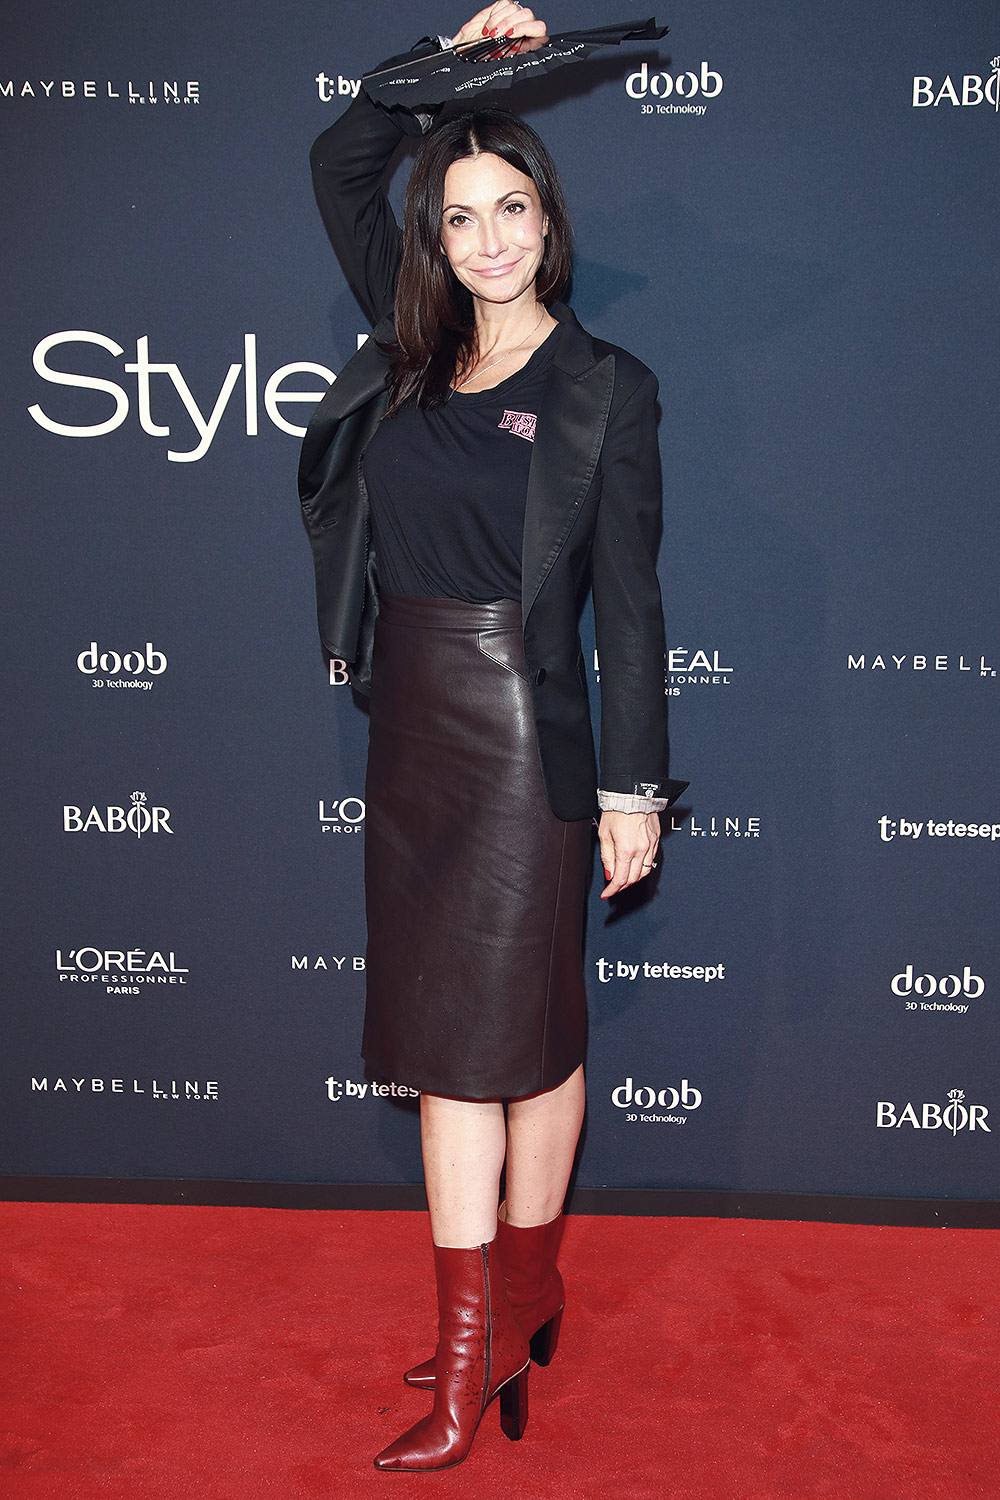 Anita Tillmann attends Michalsky StyleNite bei der Mercedes-Benz Fashion Week